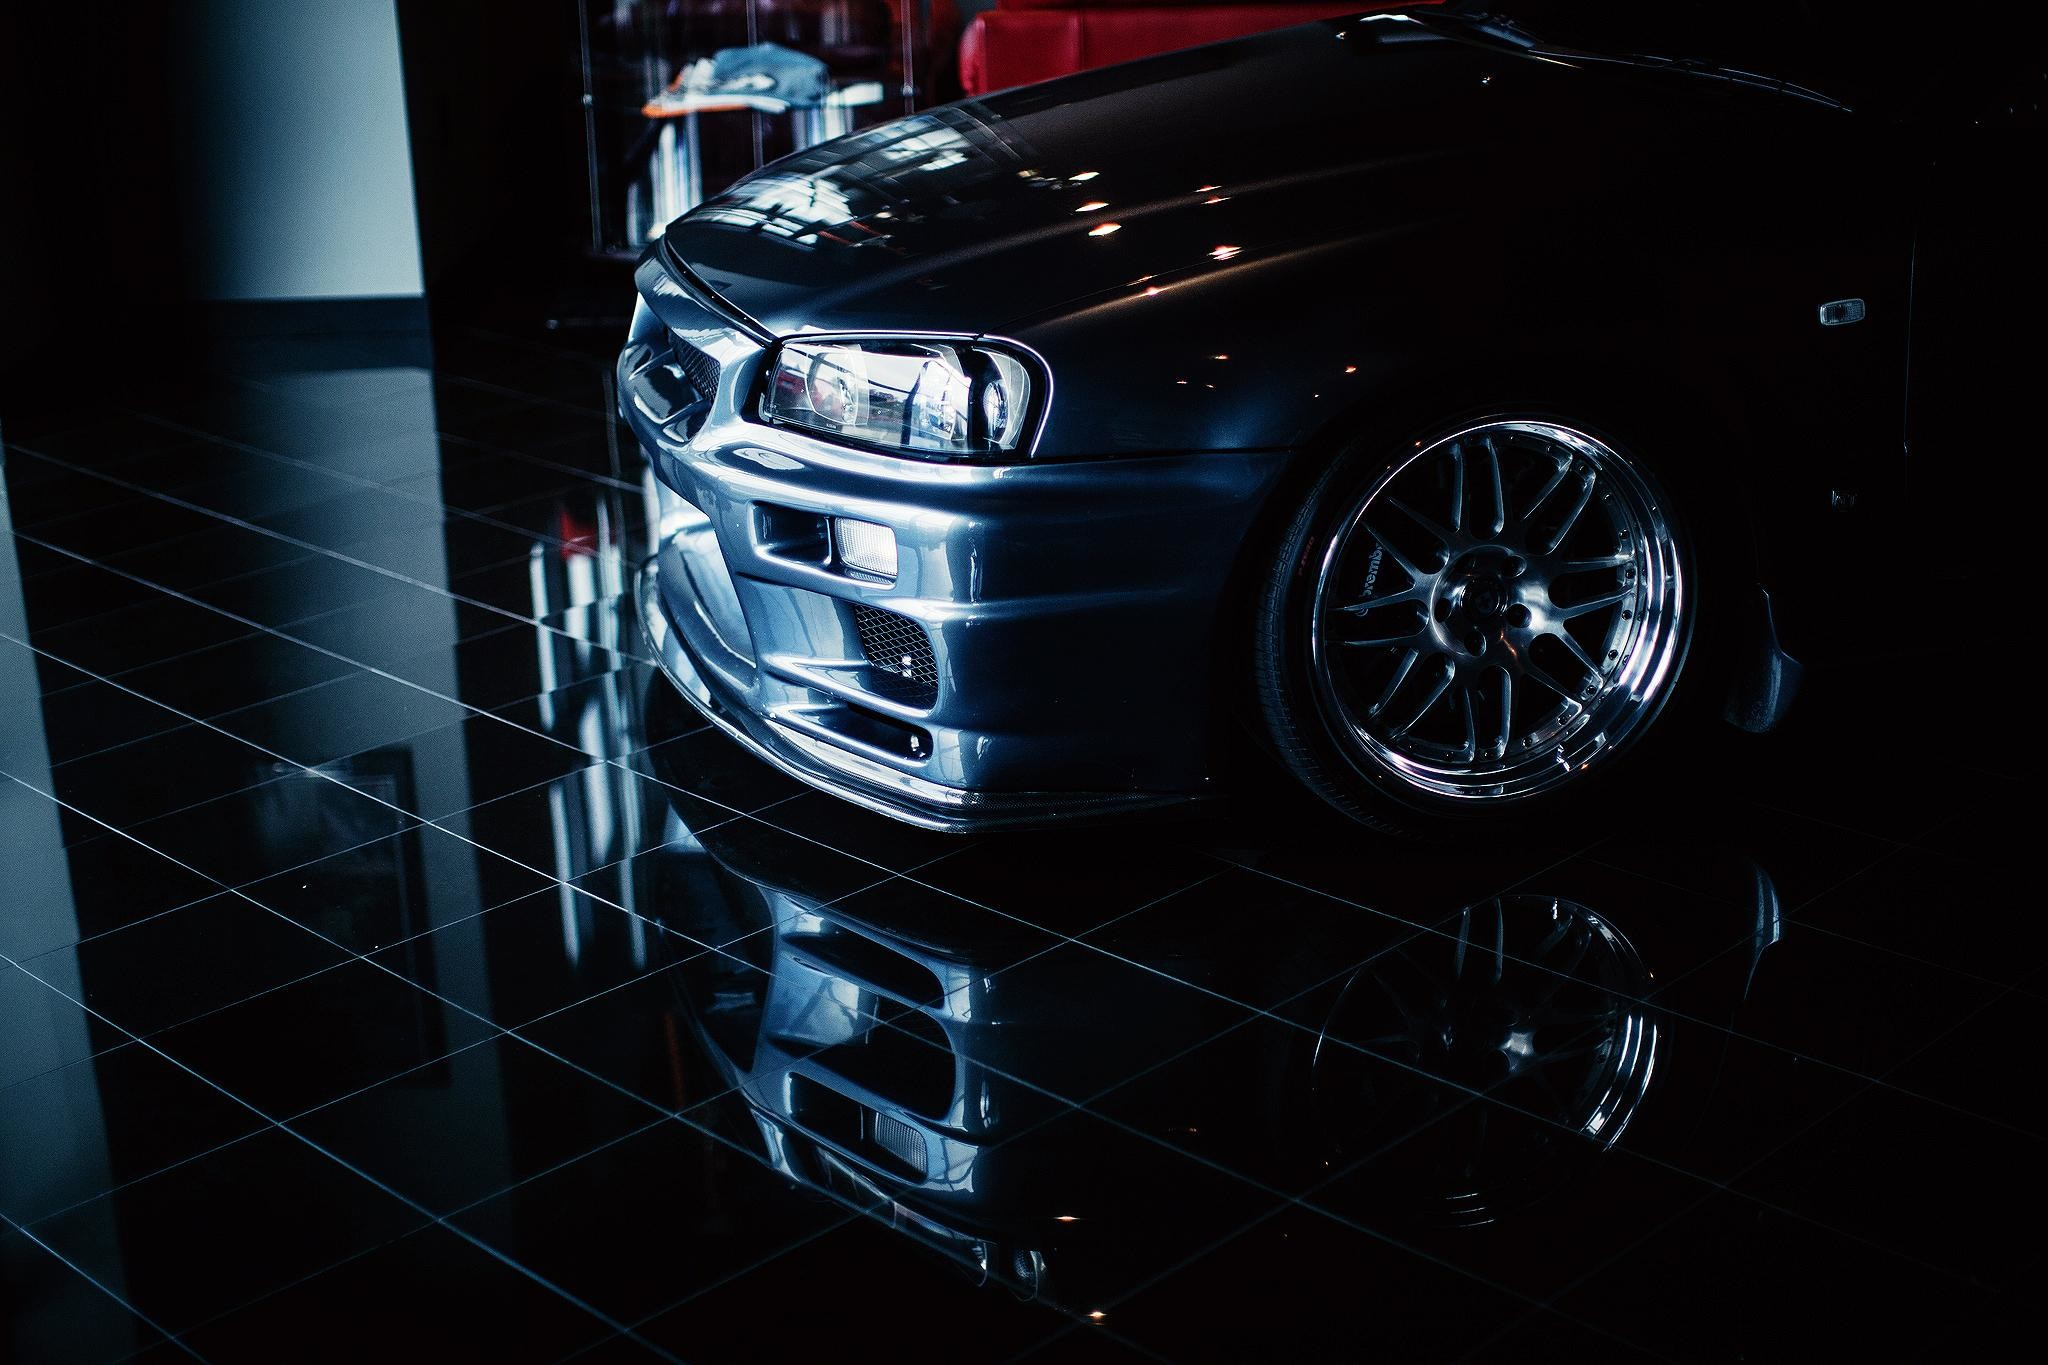 2048x1365 Nissan Skyline R34 wallpapers HD